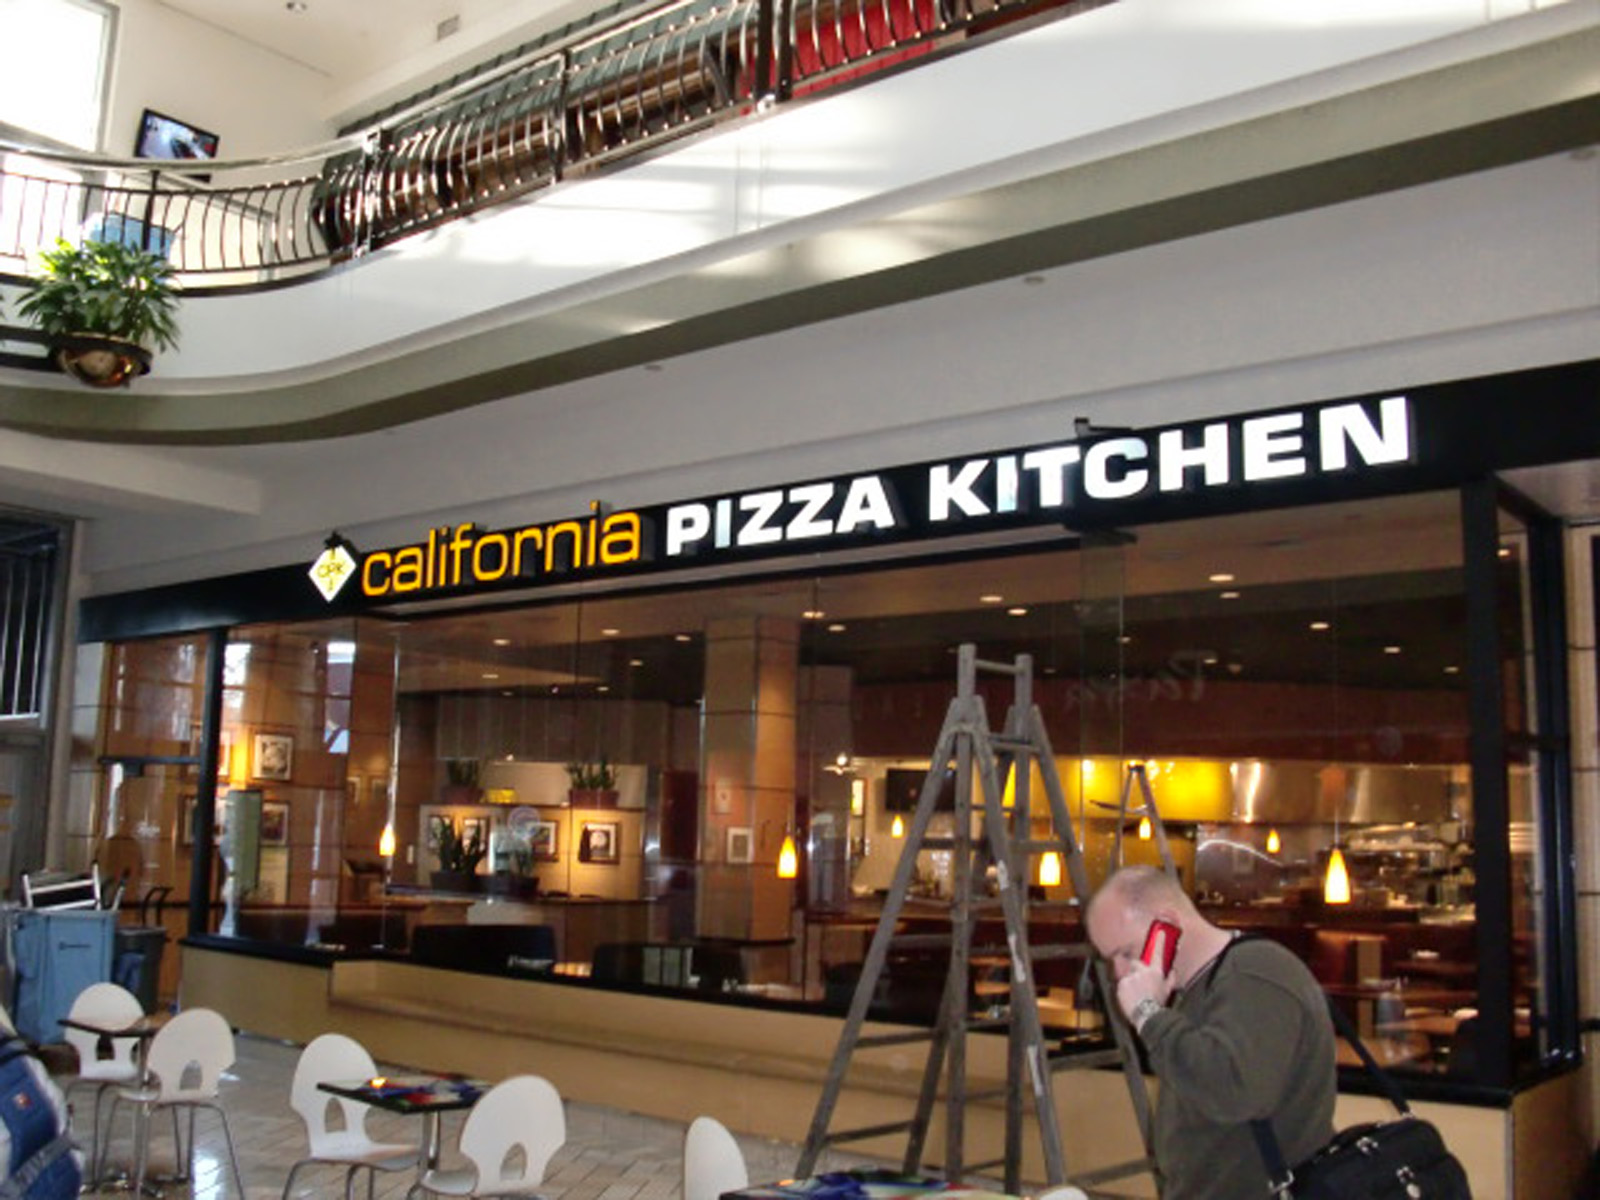 California Pizza Kitchen Ark Signs